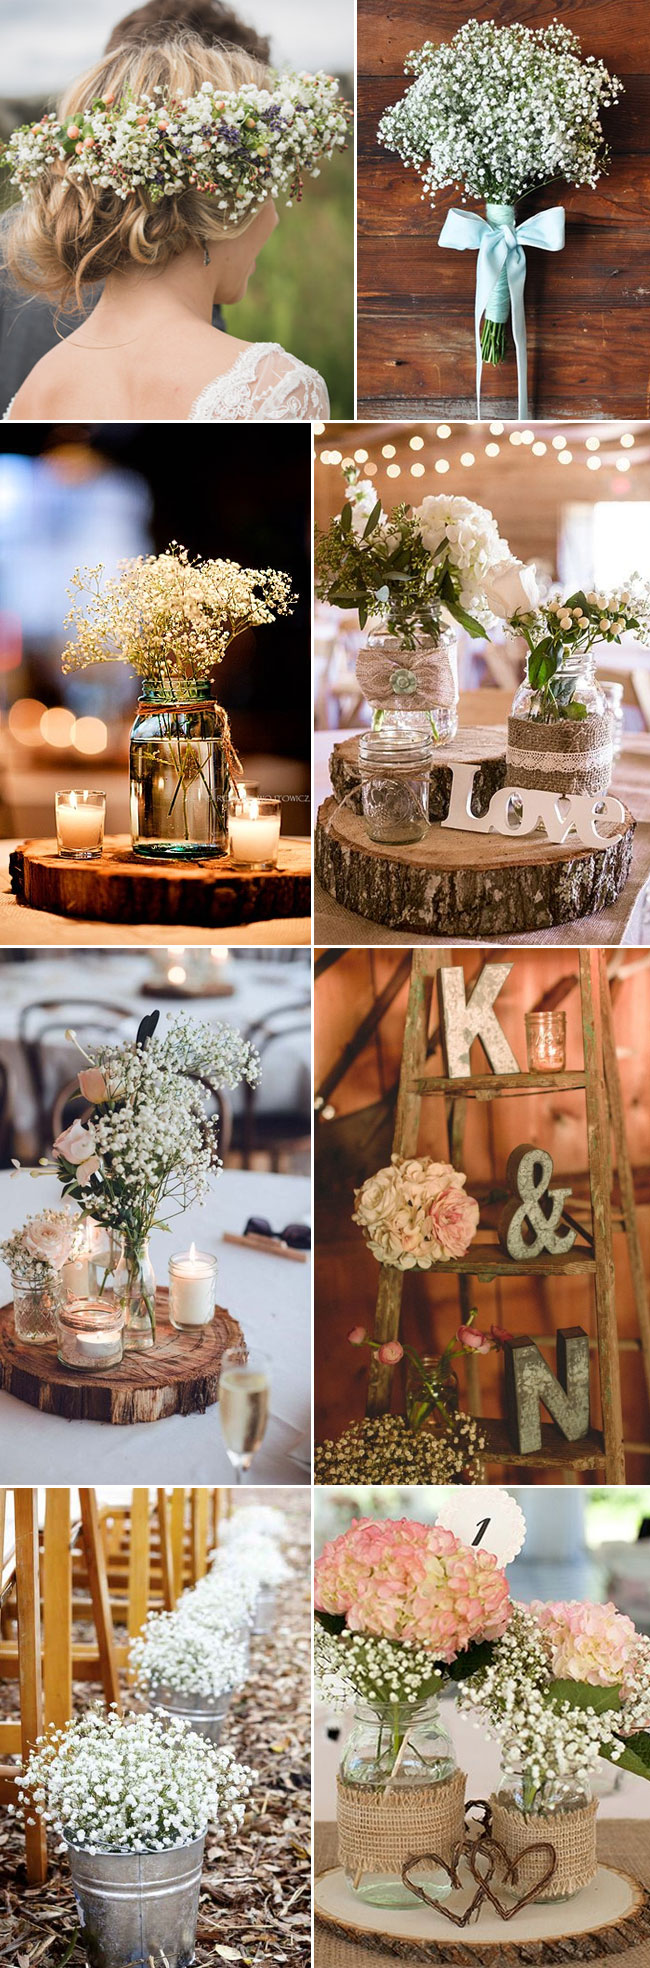 Fall Country Wedding Decoration Ideas